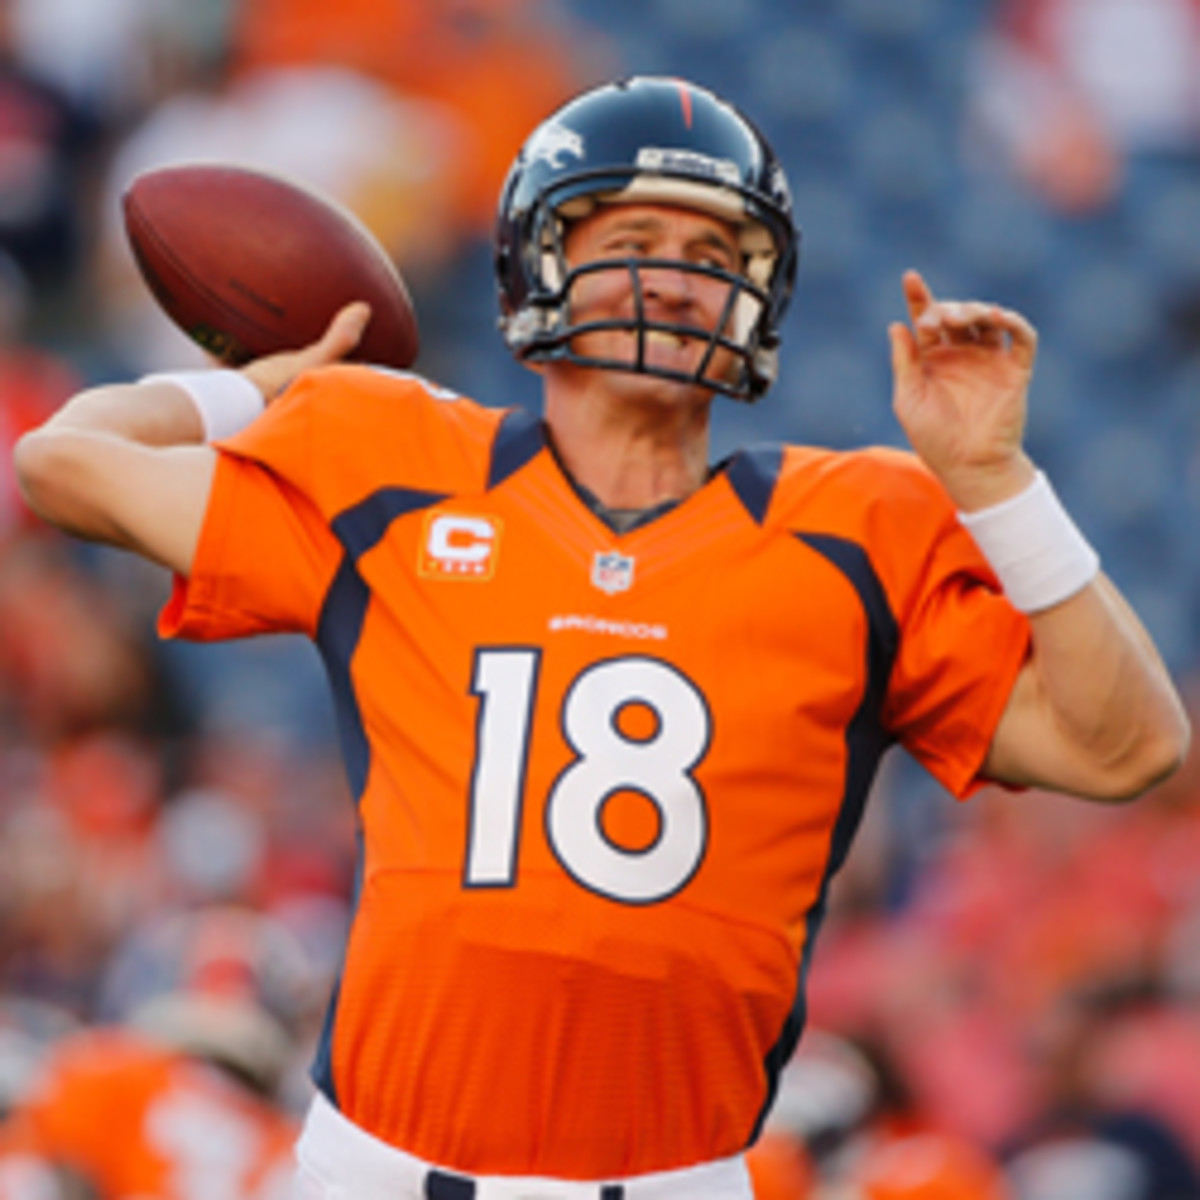 Broncos quarterback Peyton Manning is working out with three of his receivers at Duke University.  (Doug Pensinger/Getty Images)